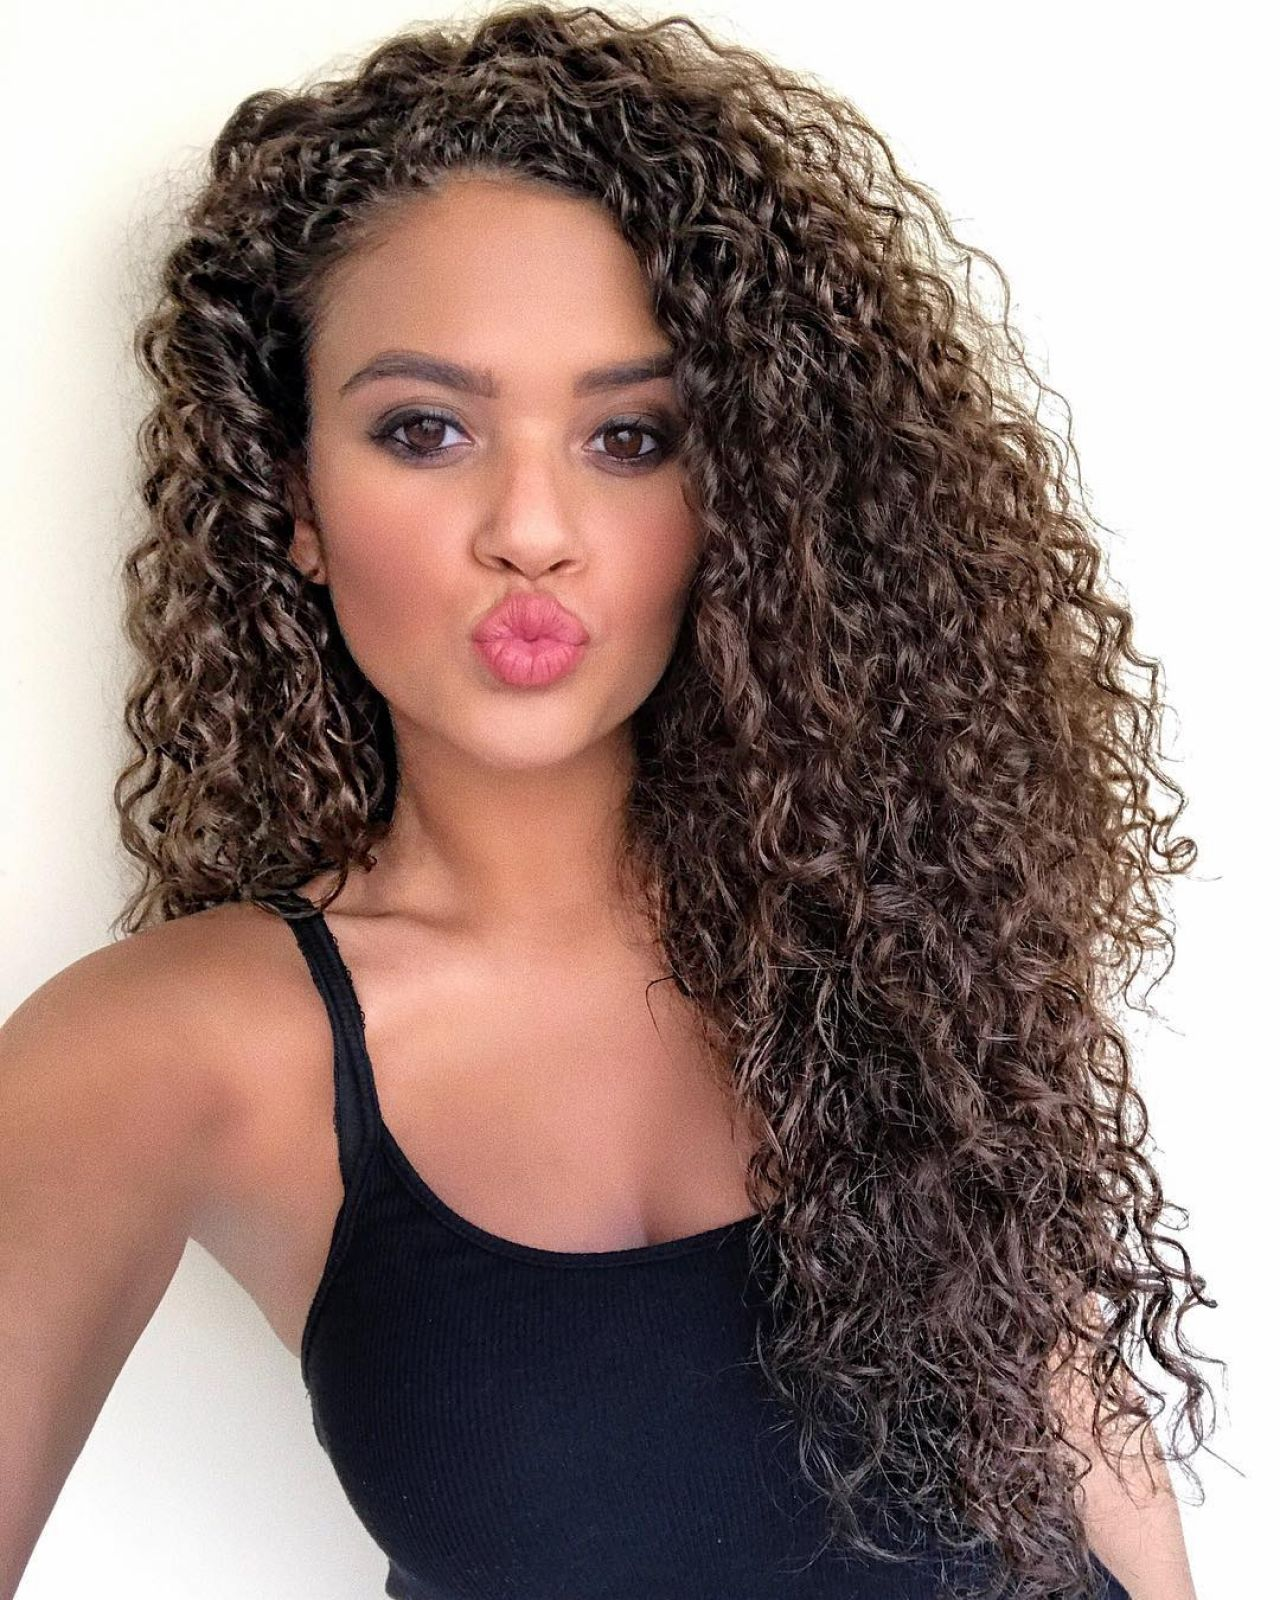 madison pettis 2017 with straight hair - photo #7